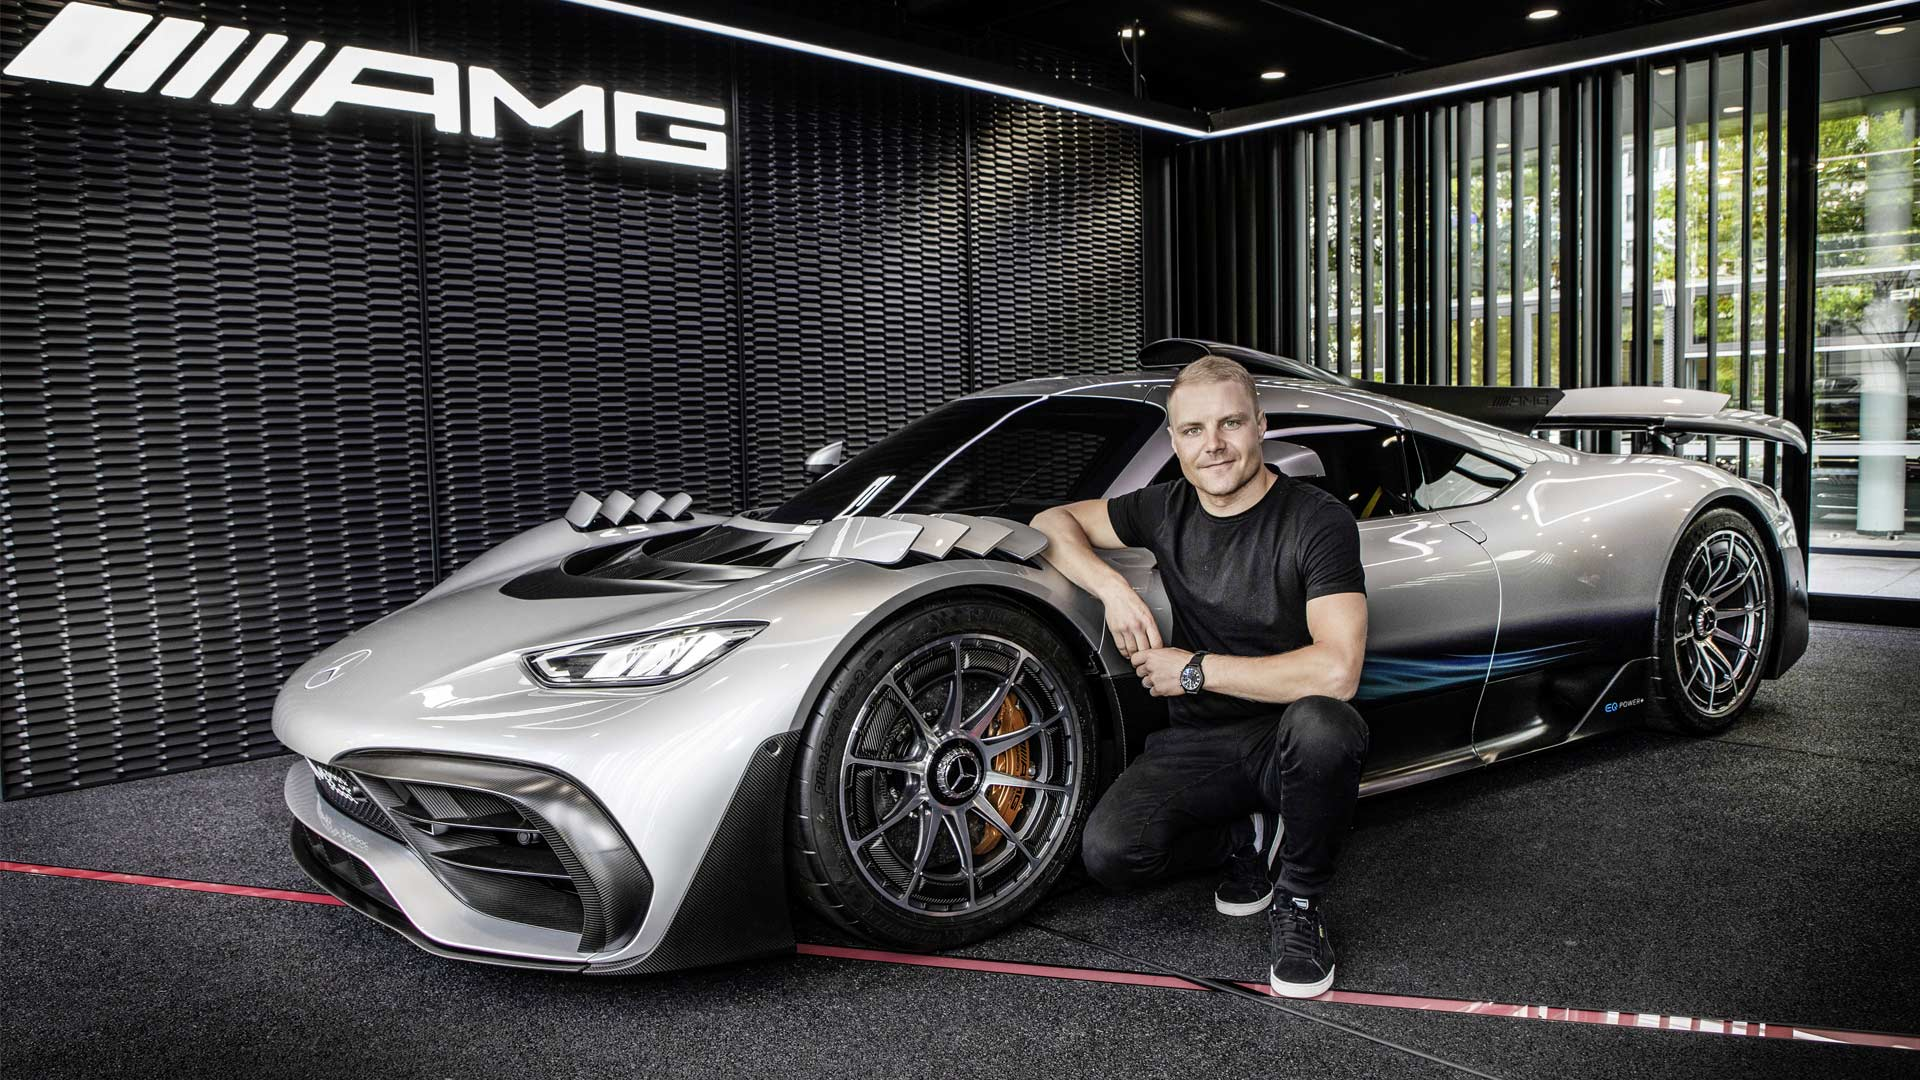 Mercedes-AMG-Project-One-is-now-Mercedes-AMG-One